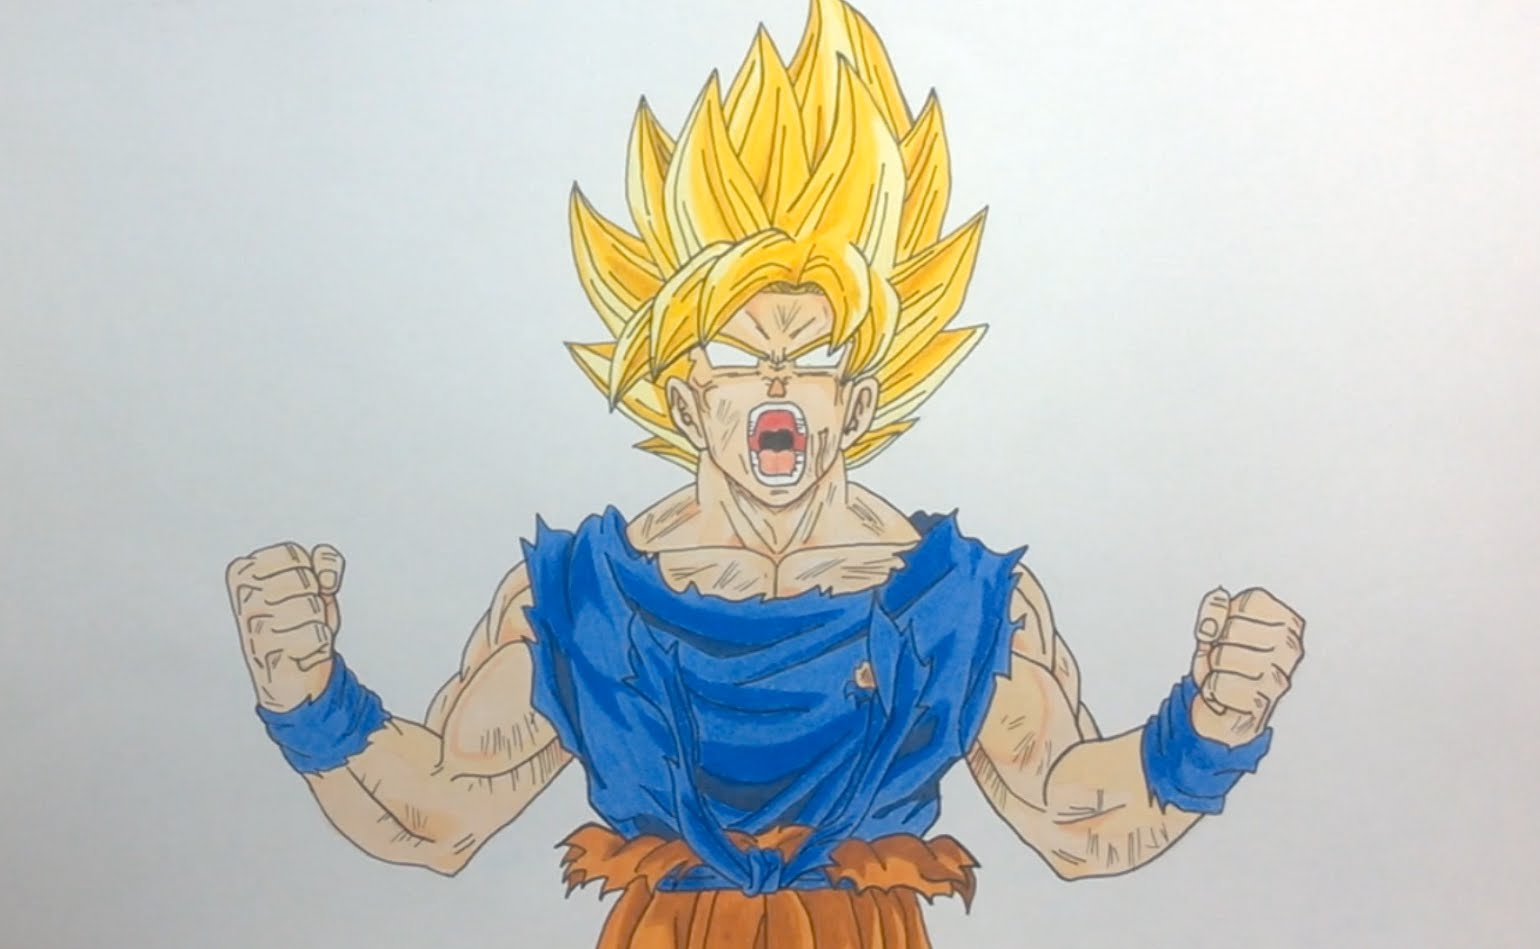 Dbz Goku Drawing At Getdrawings Com Free For Personal Use